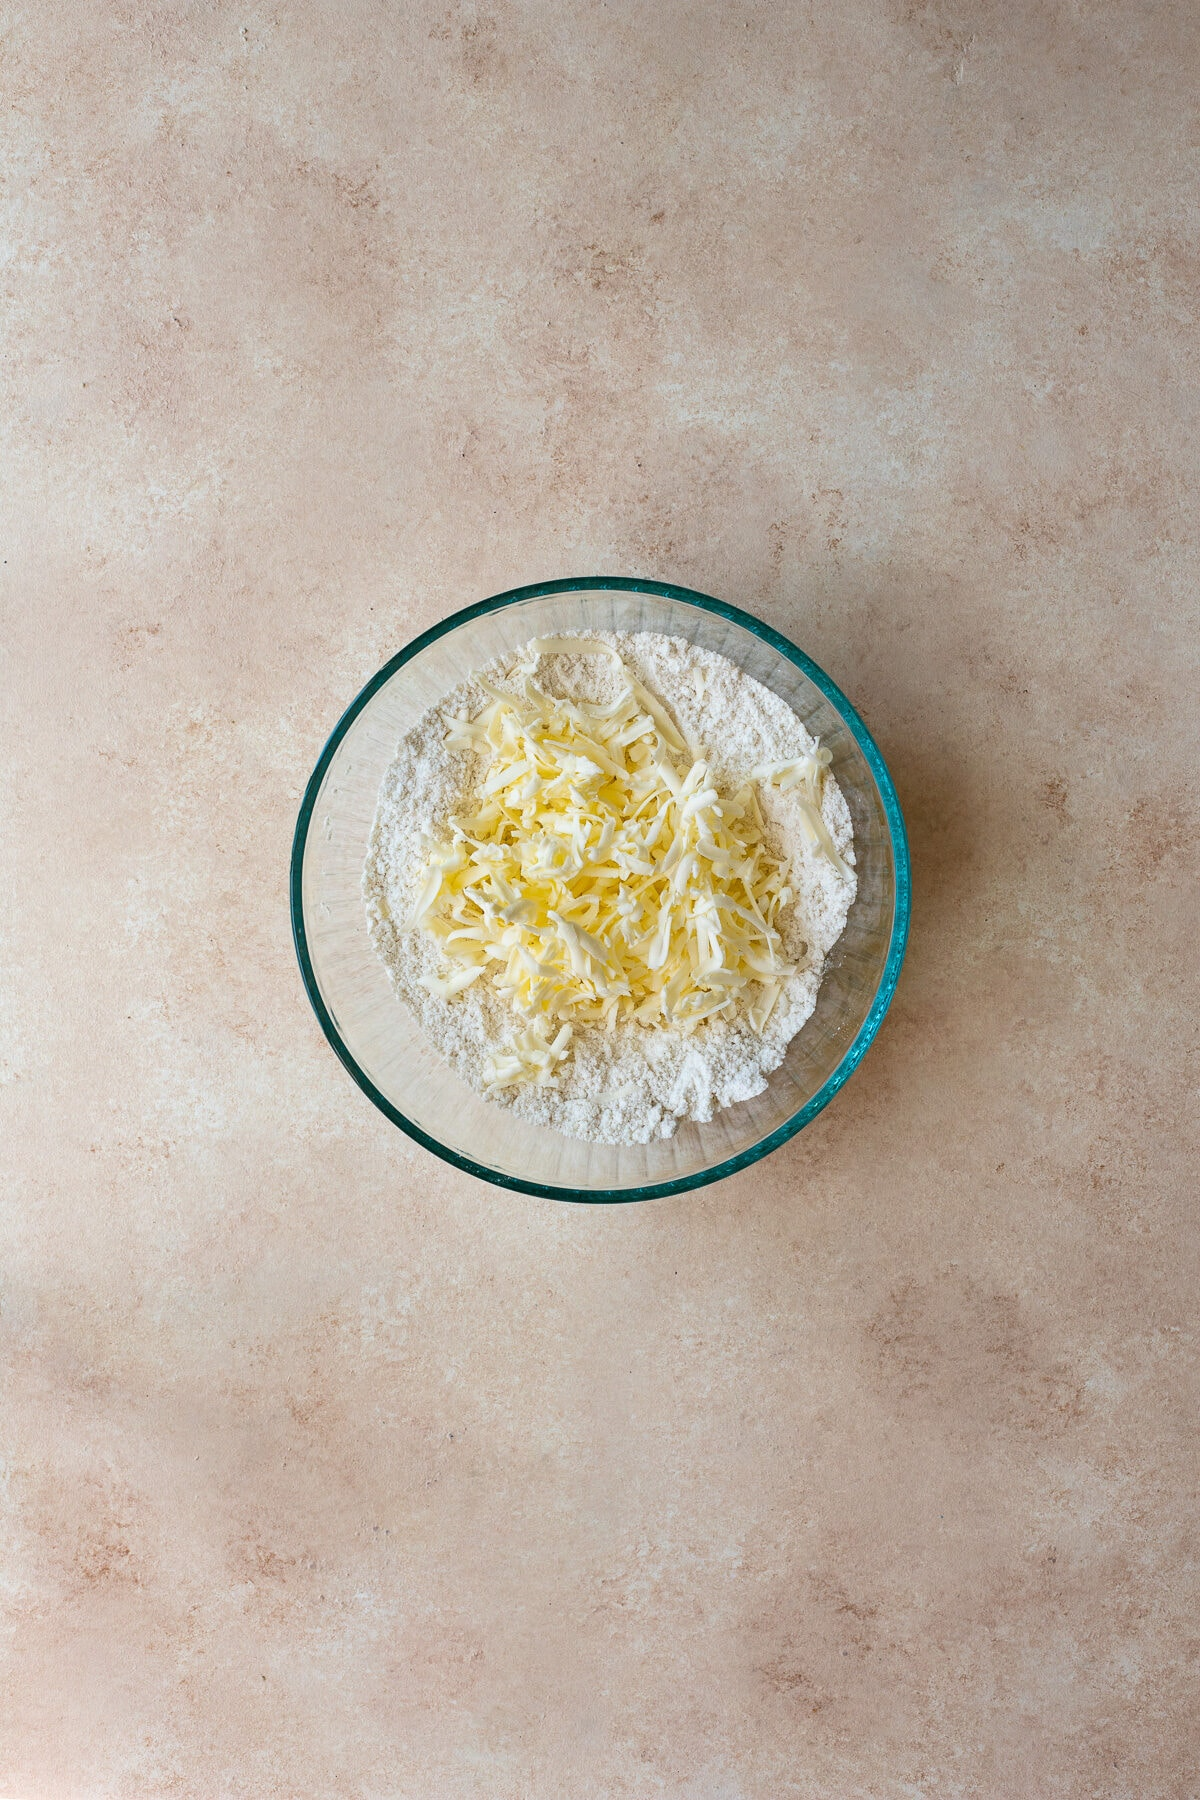 Grated butter added to a bowl of dry ingredients.